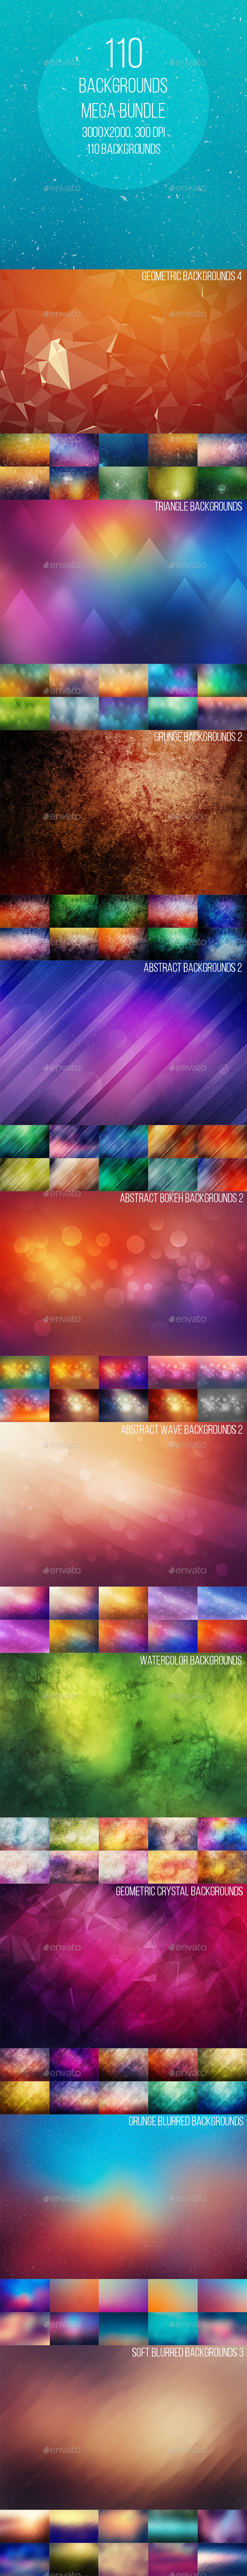 110 Backgrounds Mega Bundle - Abstract Backgrounds